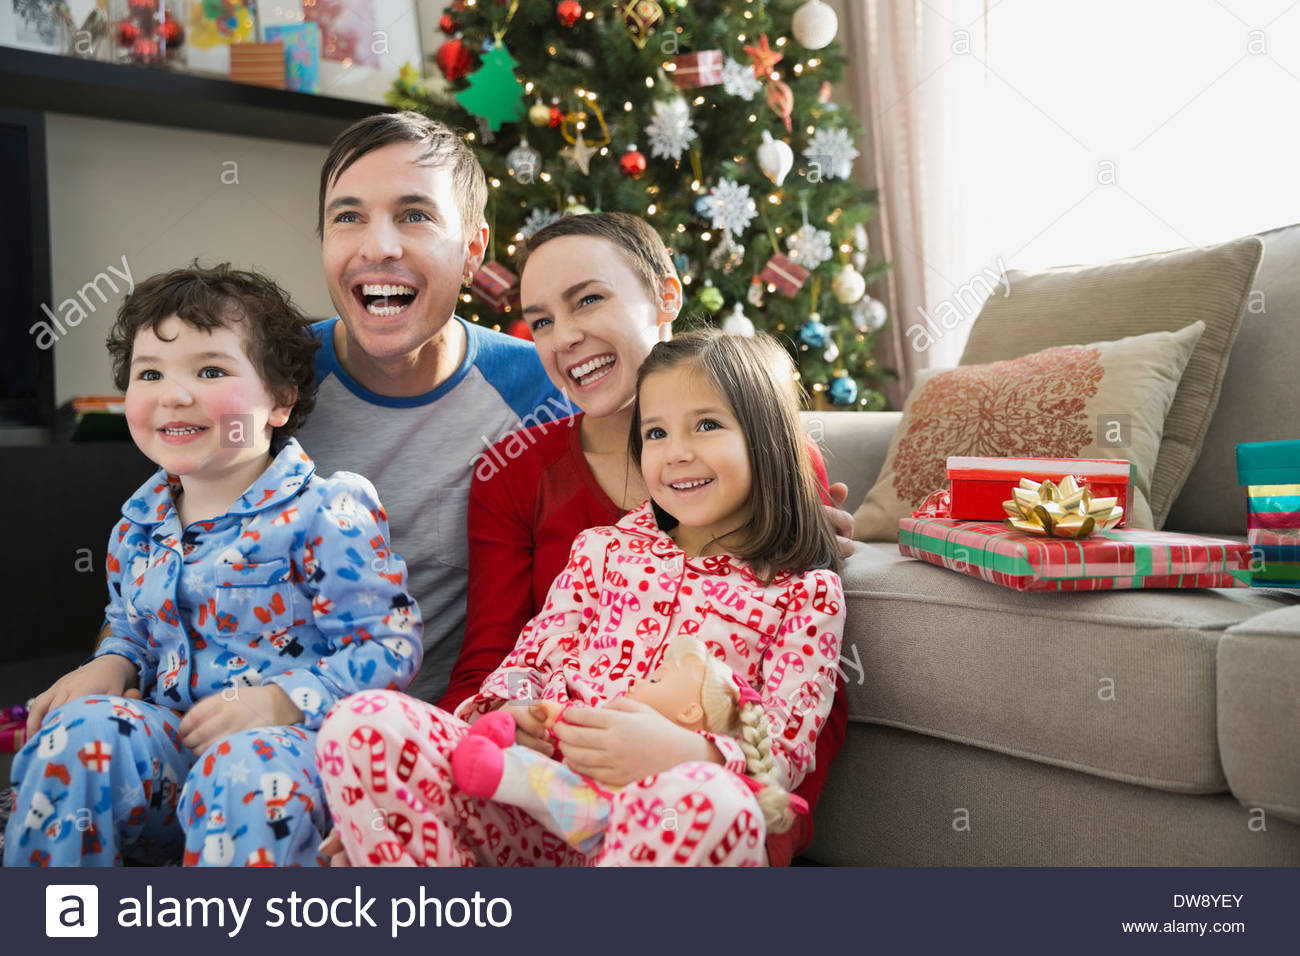 Cheerful family at home during Christmas Stock Photo